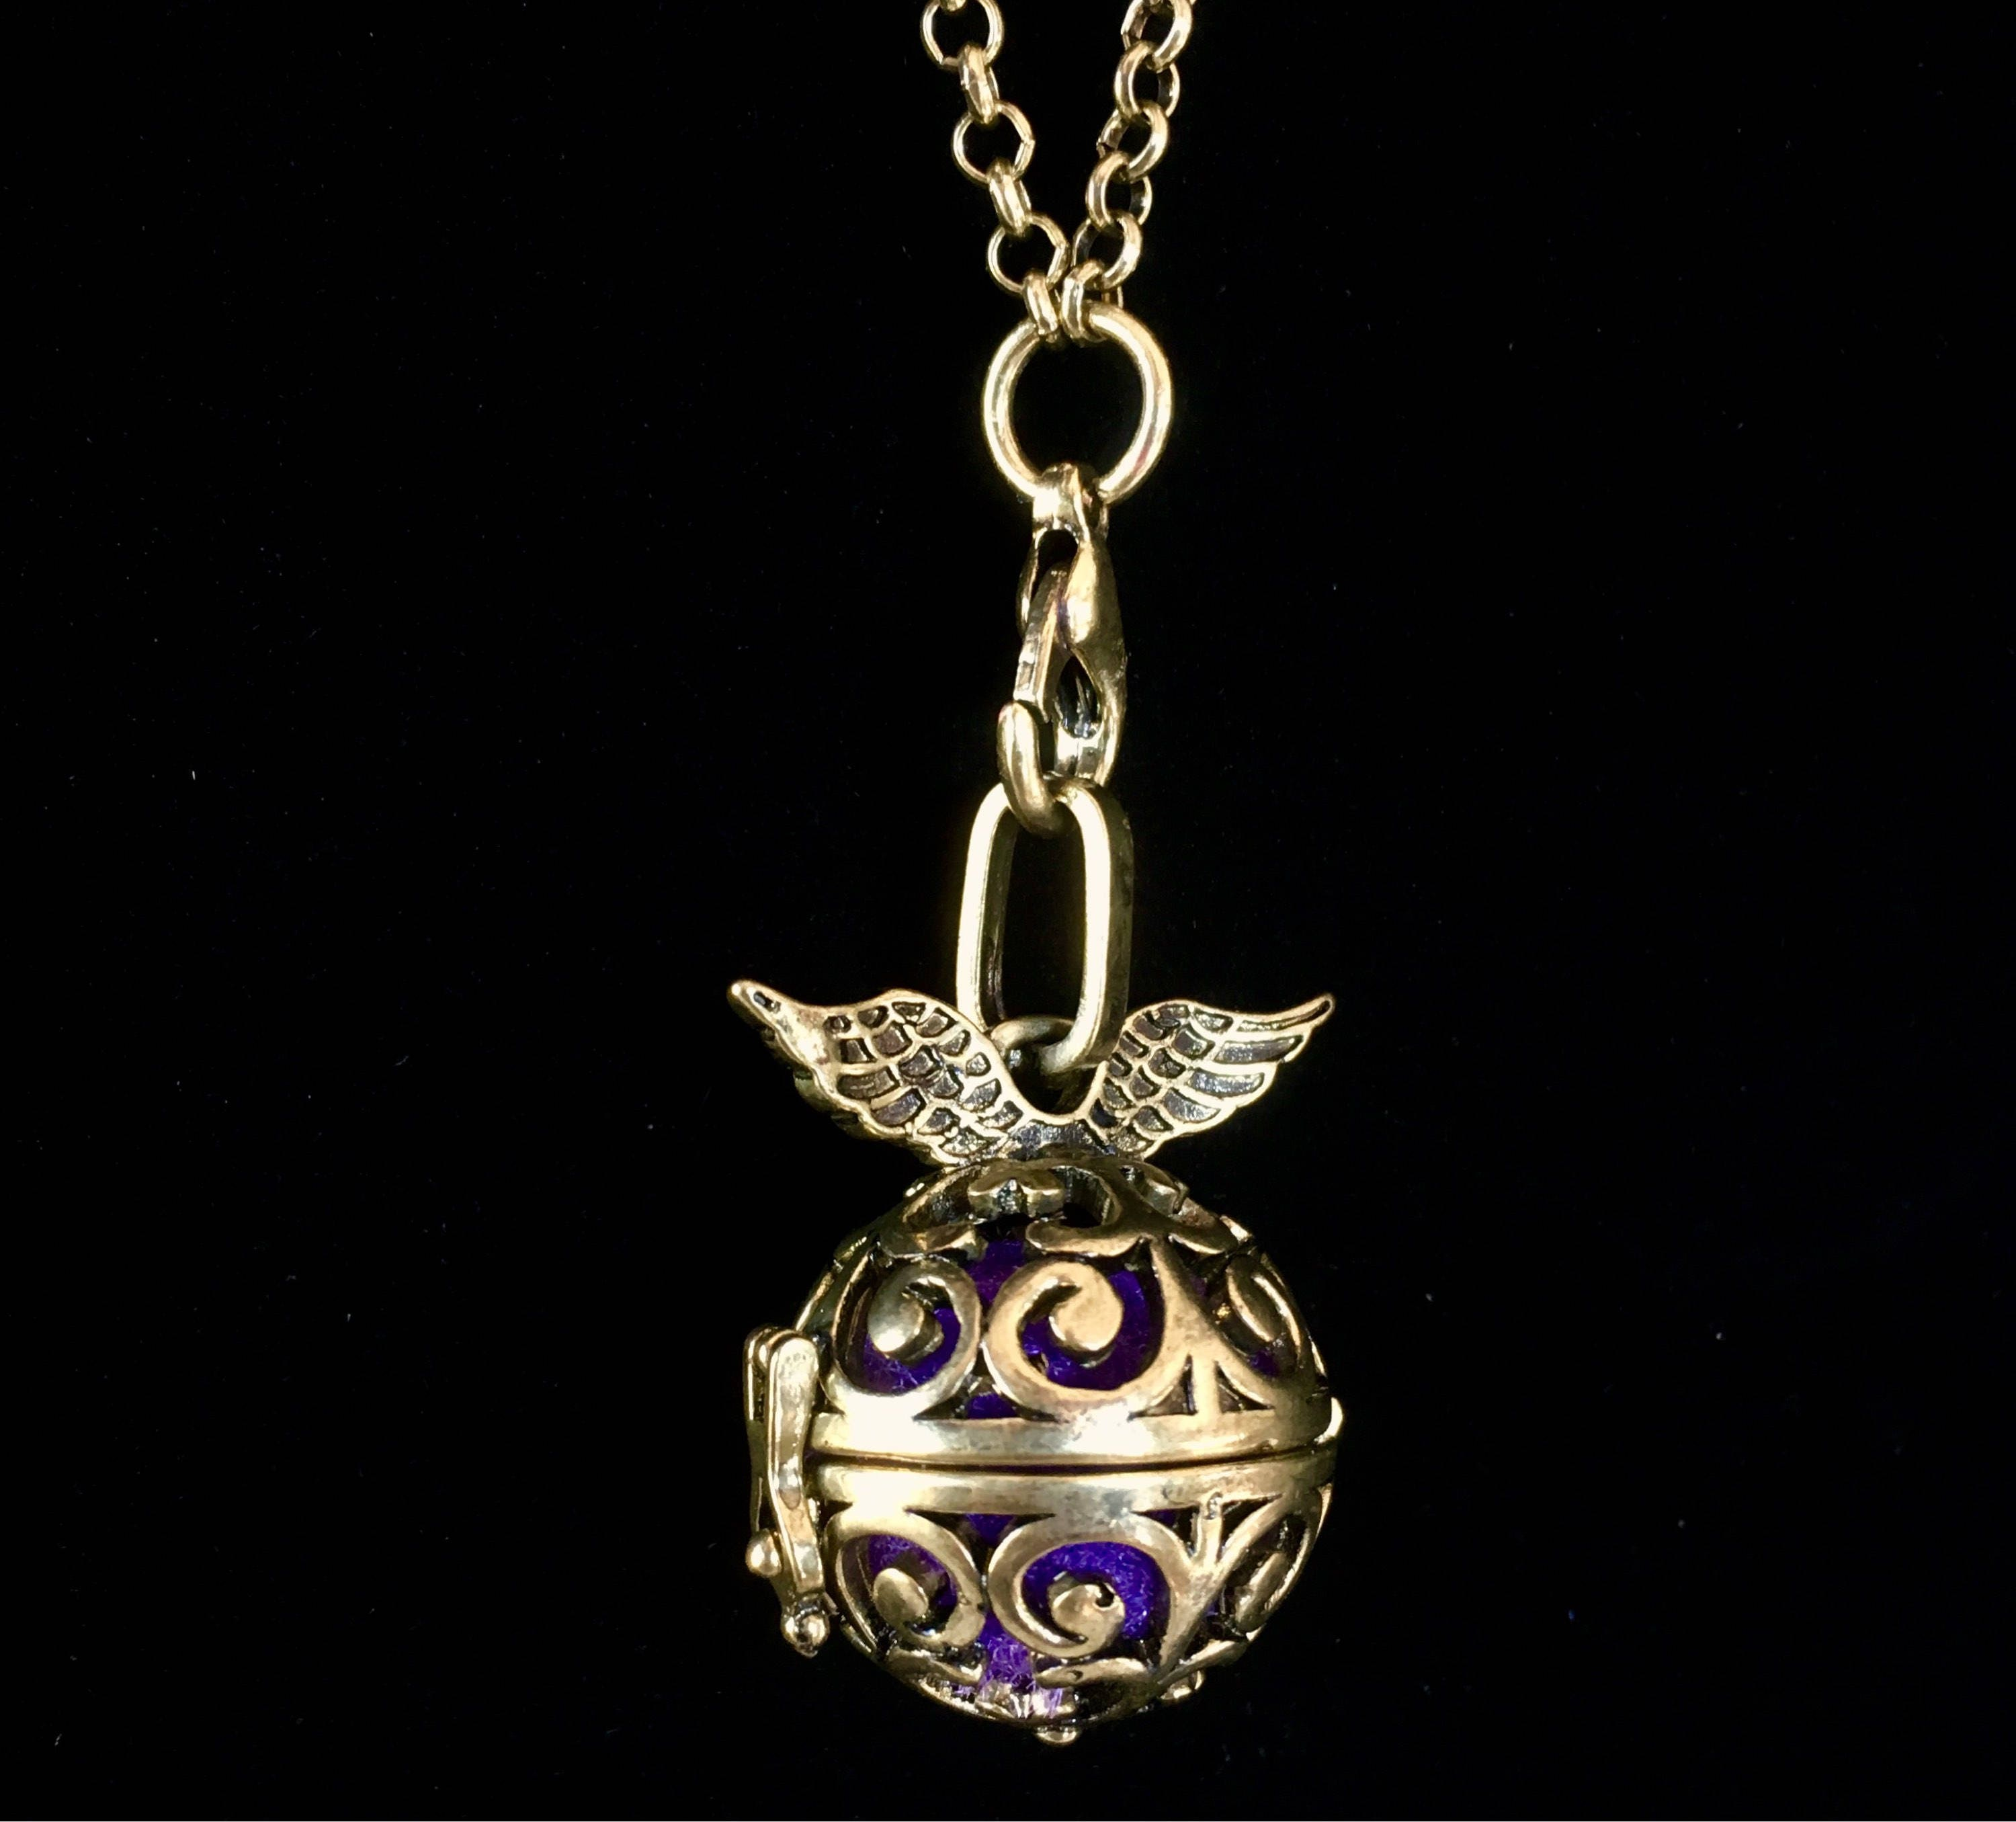 scent inside all you as essential day cotton diffuser necklace the your diffused is locket oils living and small young of pin put a piece drip oil